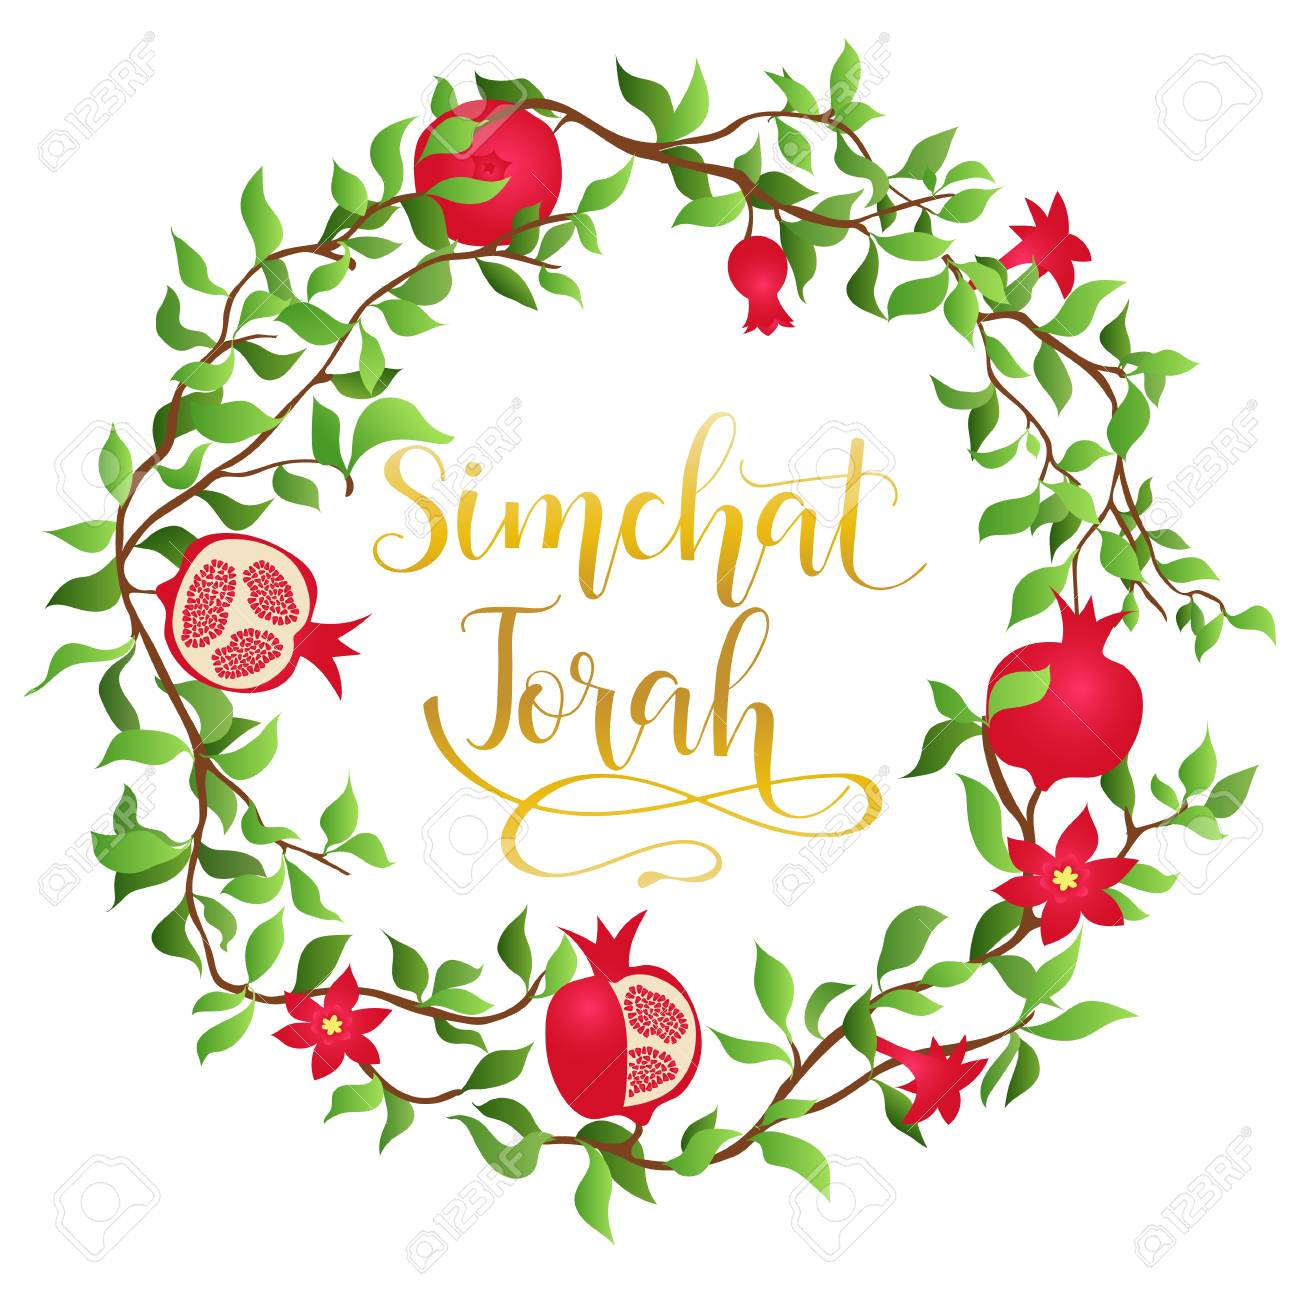 Simchat Torah Text Design Vector Calligraphy Lettering